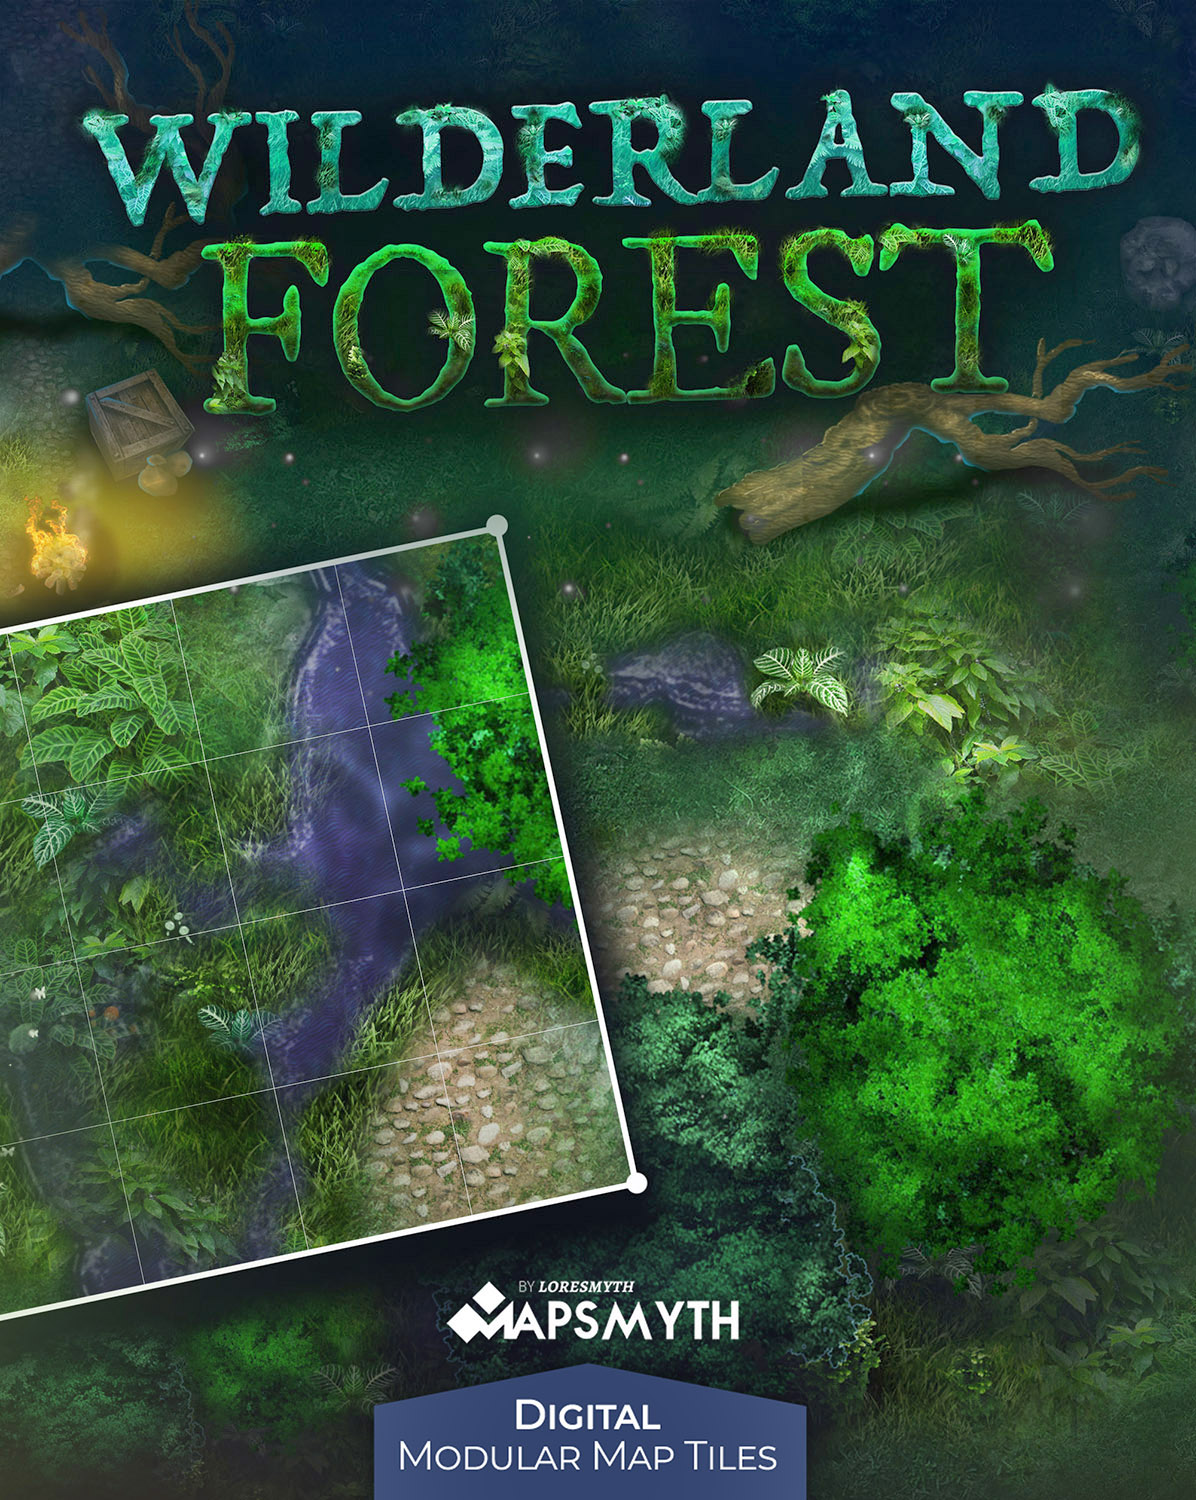 Wilderland Forest are HD detailed modular map tiles for use in VTT or image software. Create your own amazing terrain maps with ease!